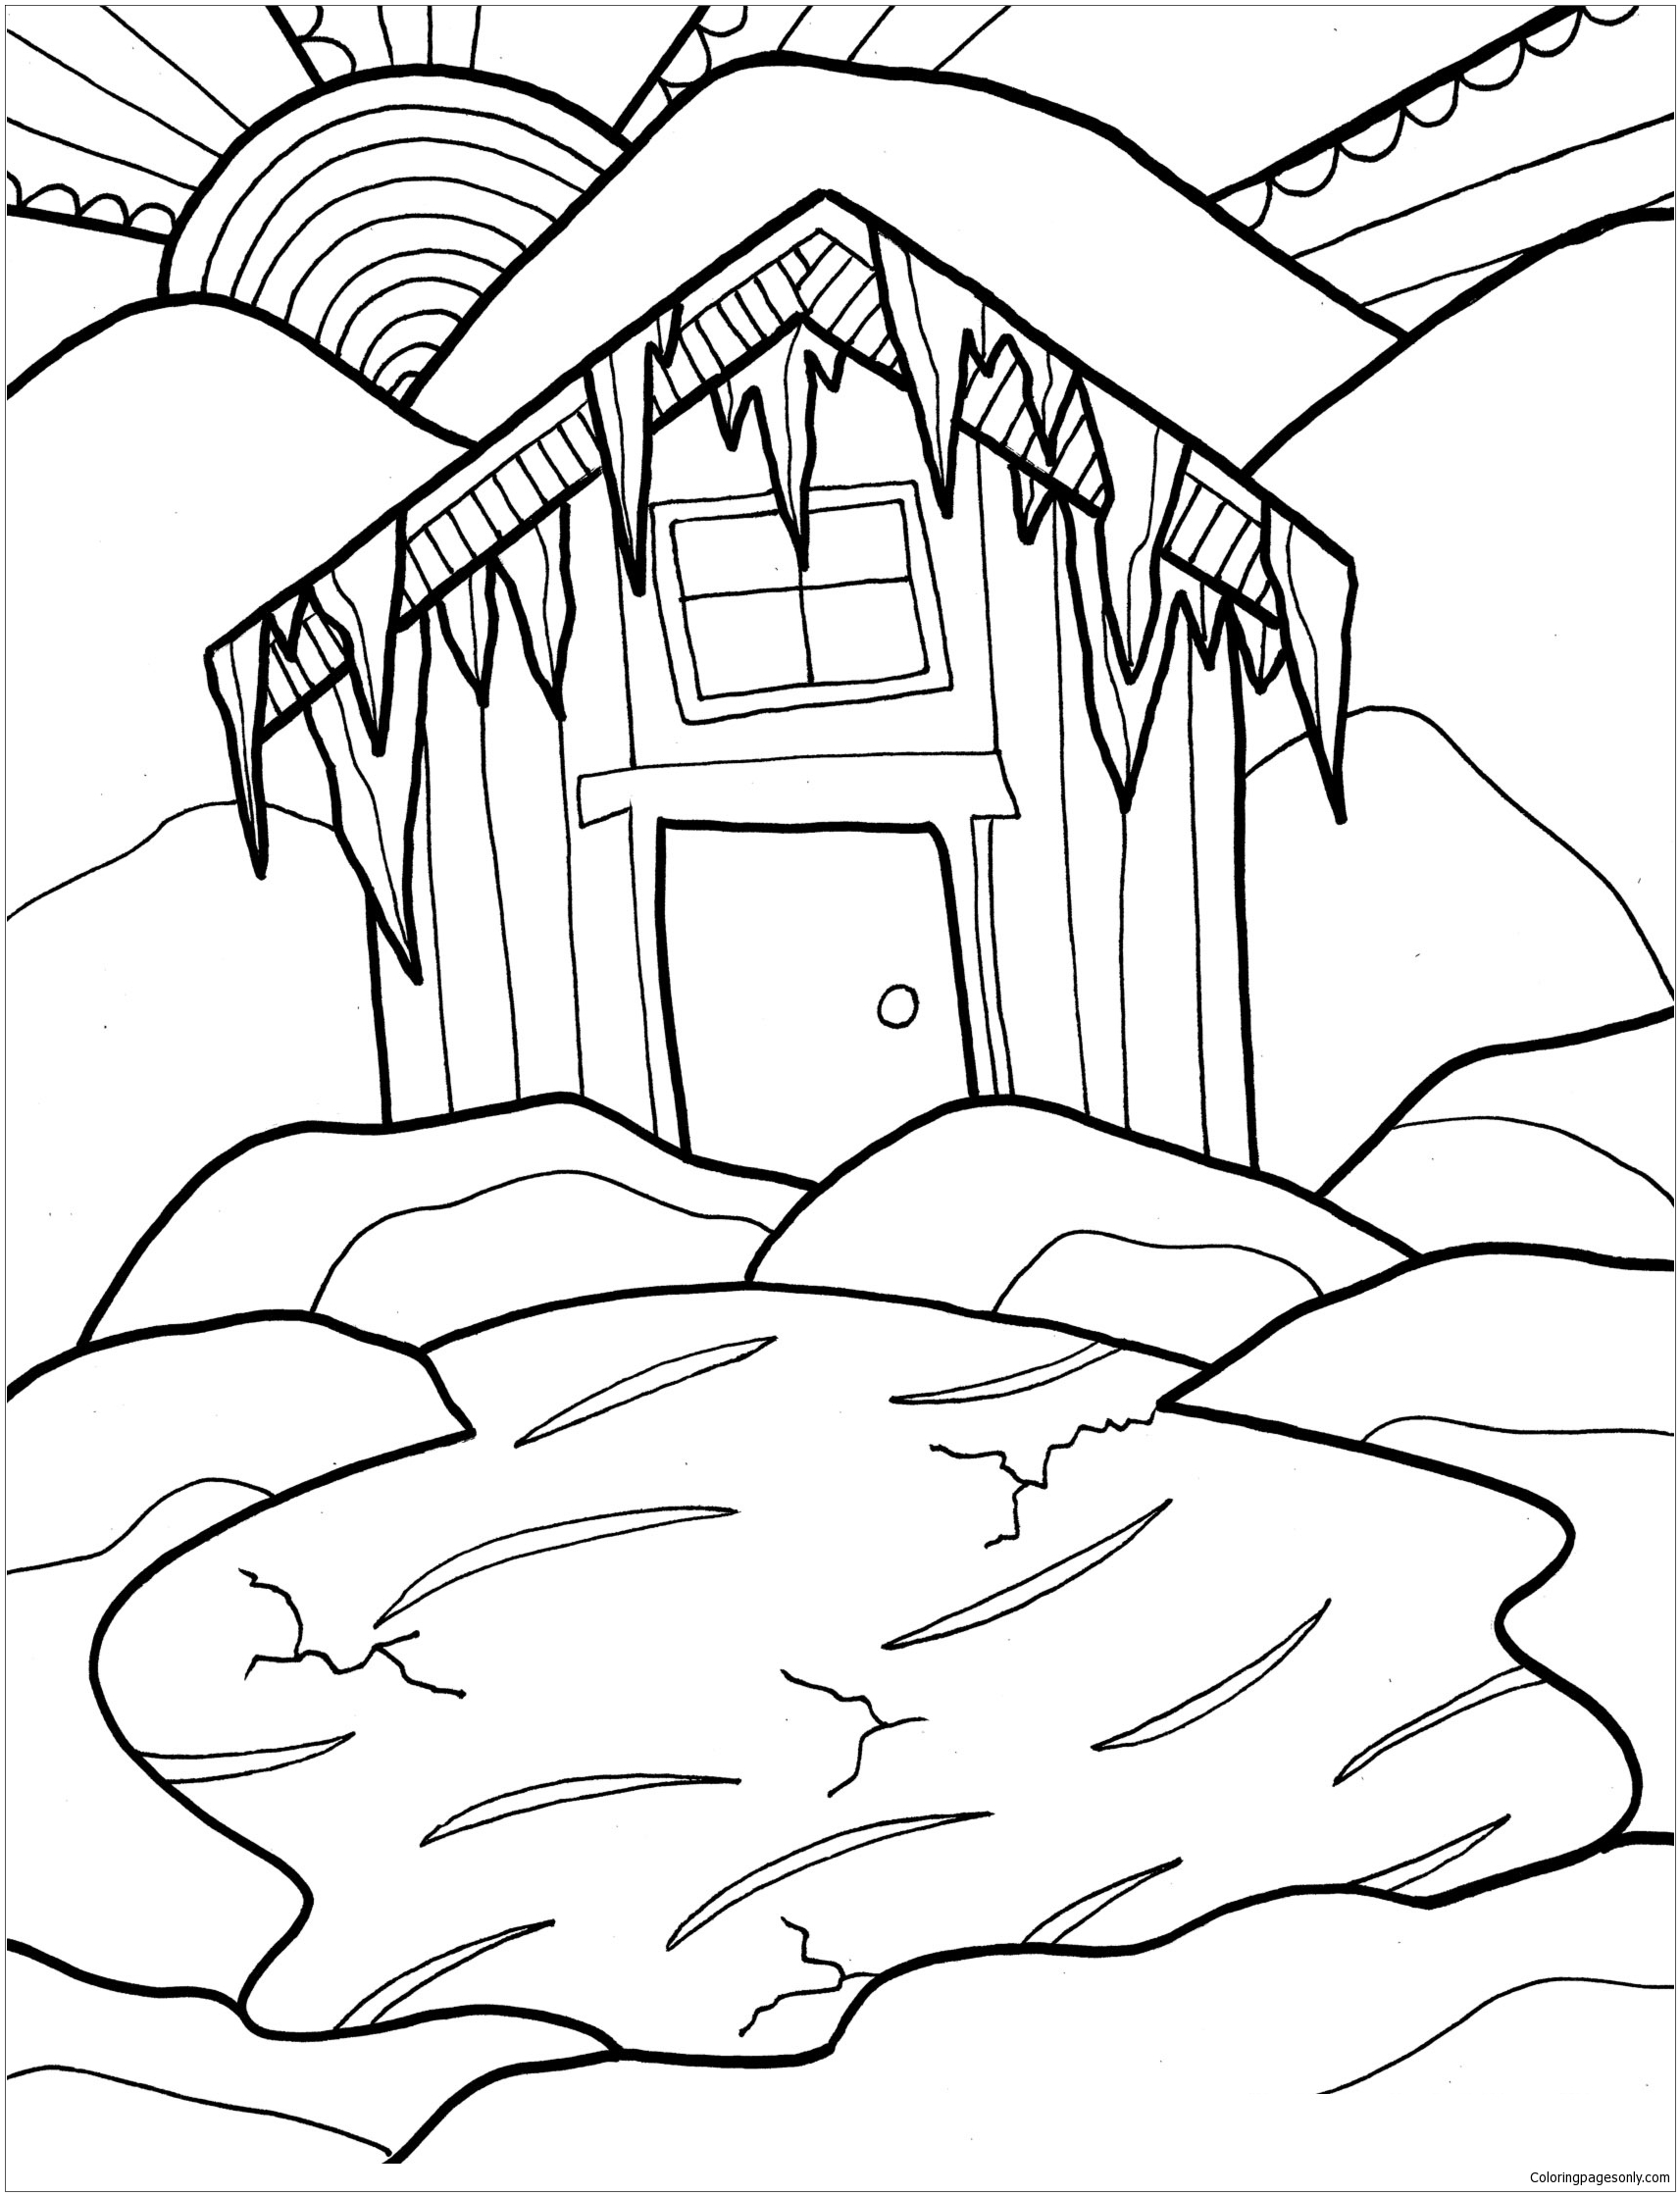 coloring pages of cabins log cabin drawing at getdrawings free download coloring pages cabins of